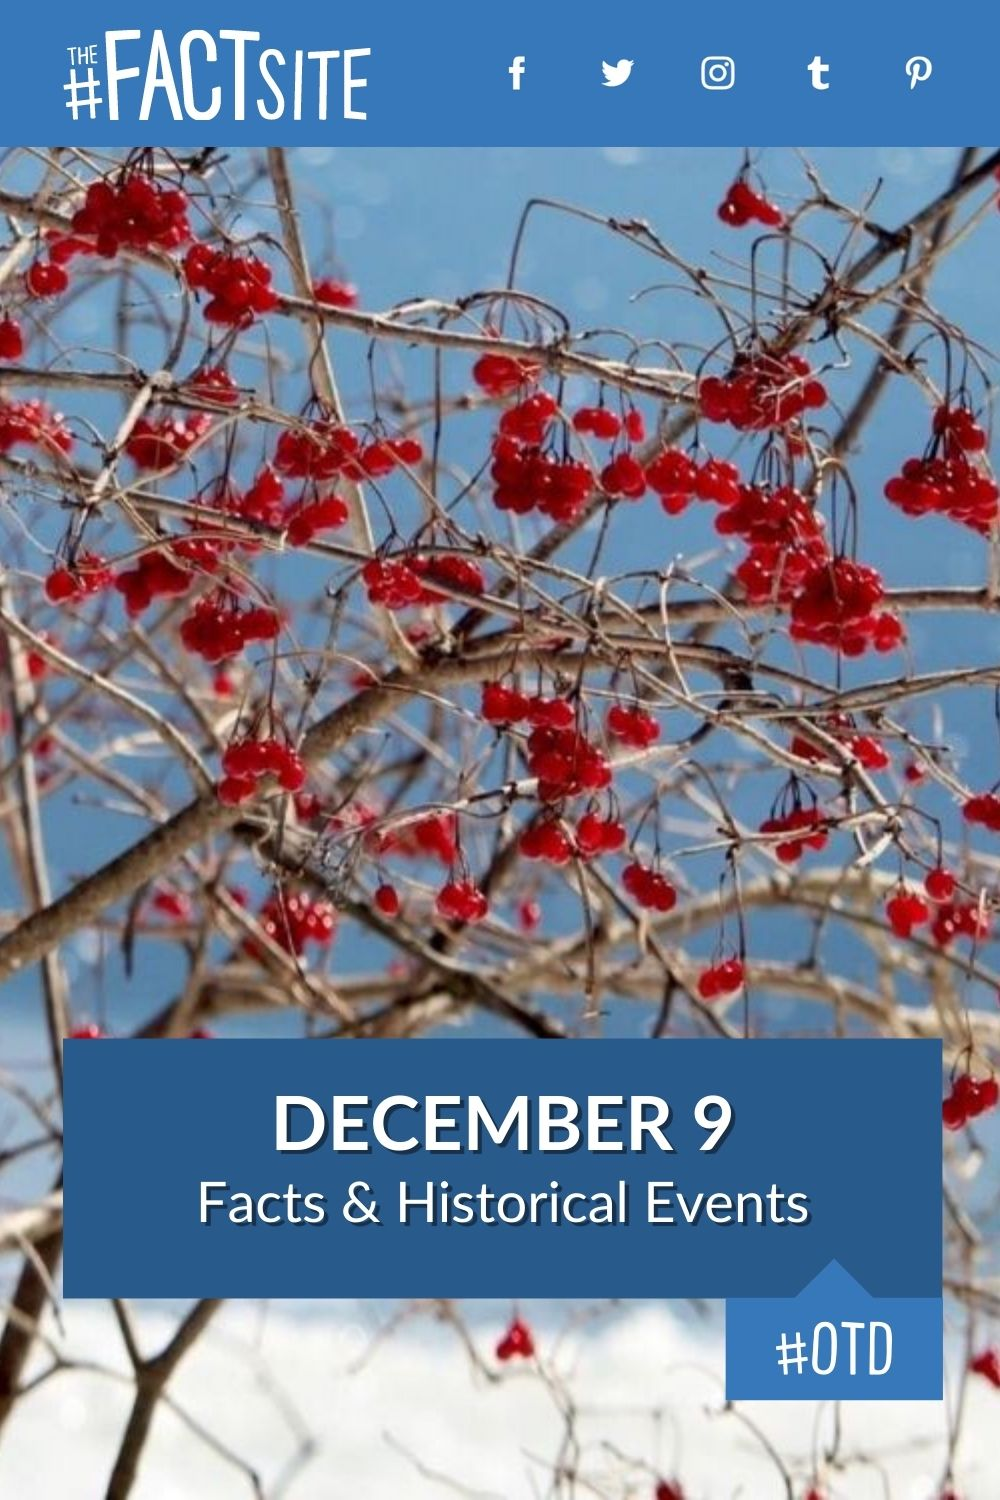 Facts & Historic Events That Happened on December 9